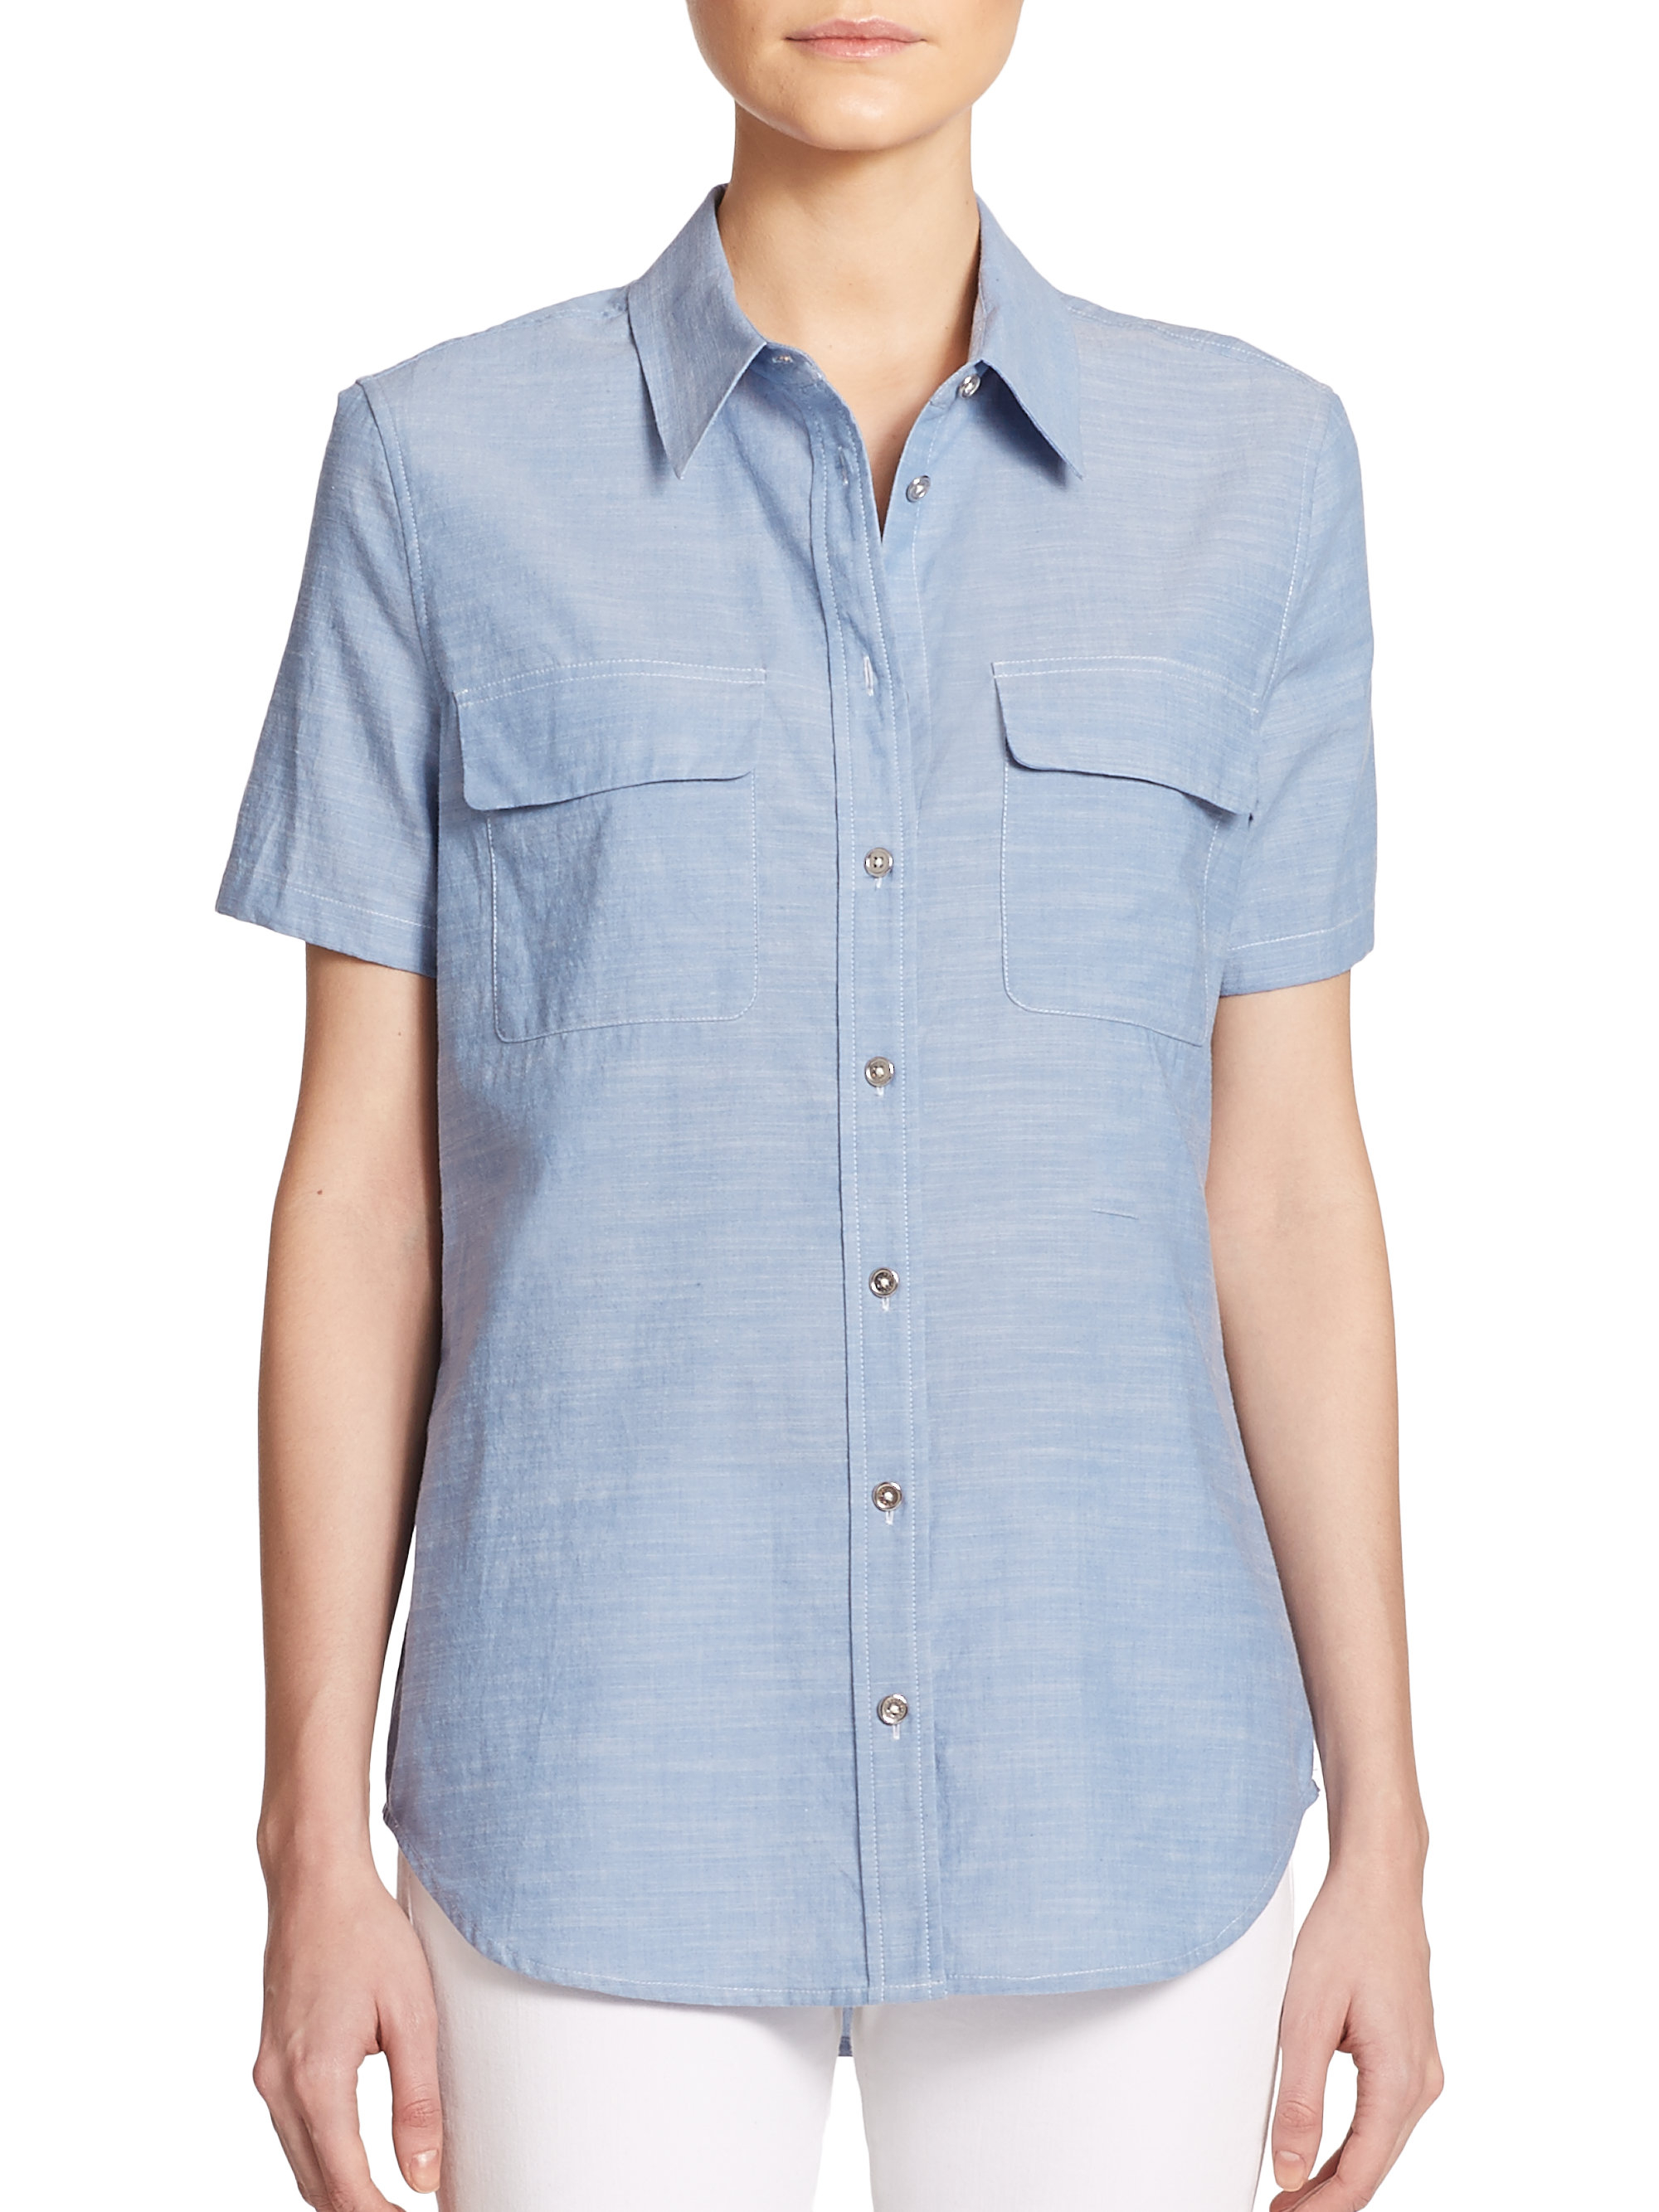 Chambray Flutter-Sleeve Tie-Belt Shirt Dress for Women. $ 39% off. $ 35% Off Taken at Checkout. Chambray Shirt Dress for Women. $ 42% off. $ Getting back to stylish basics is effortless with versatile chambray shirts for women that are dominating the season's style scene. Old Navy offers an affordable variety of.